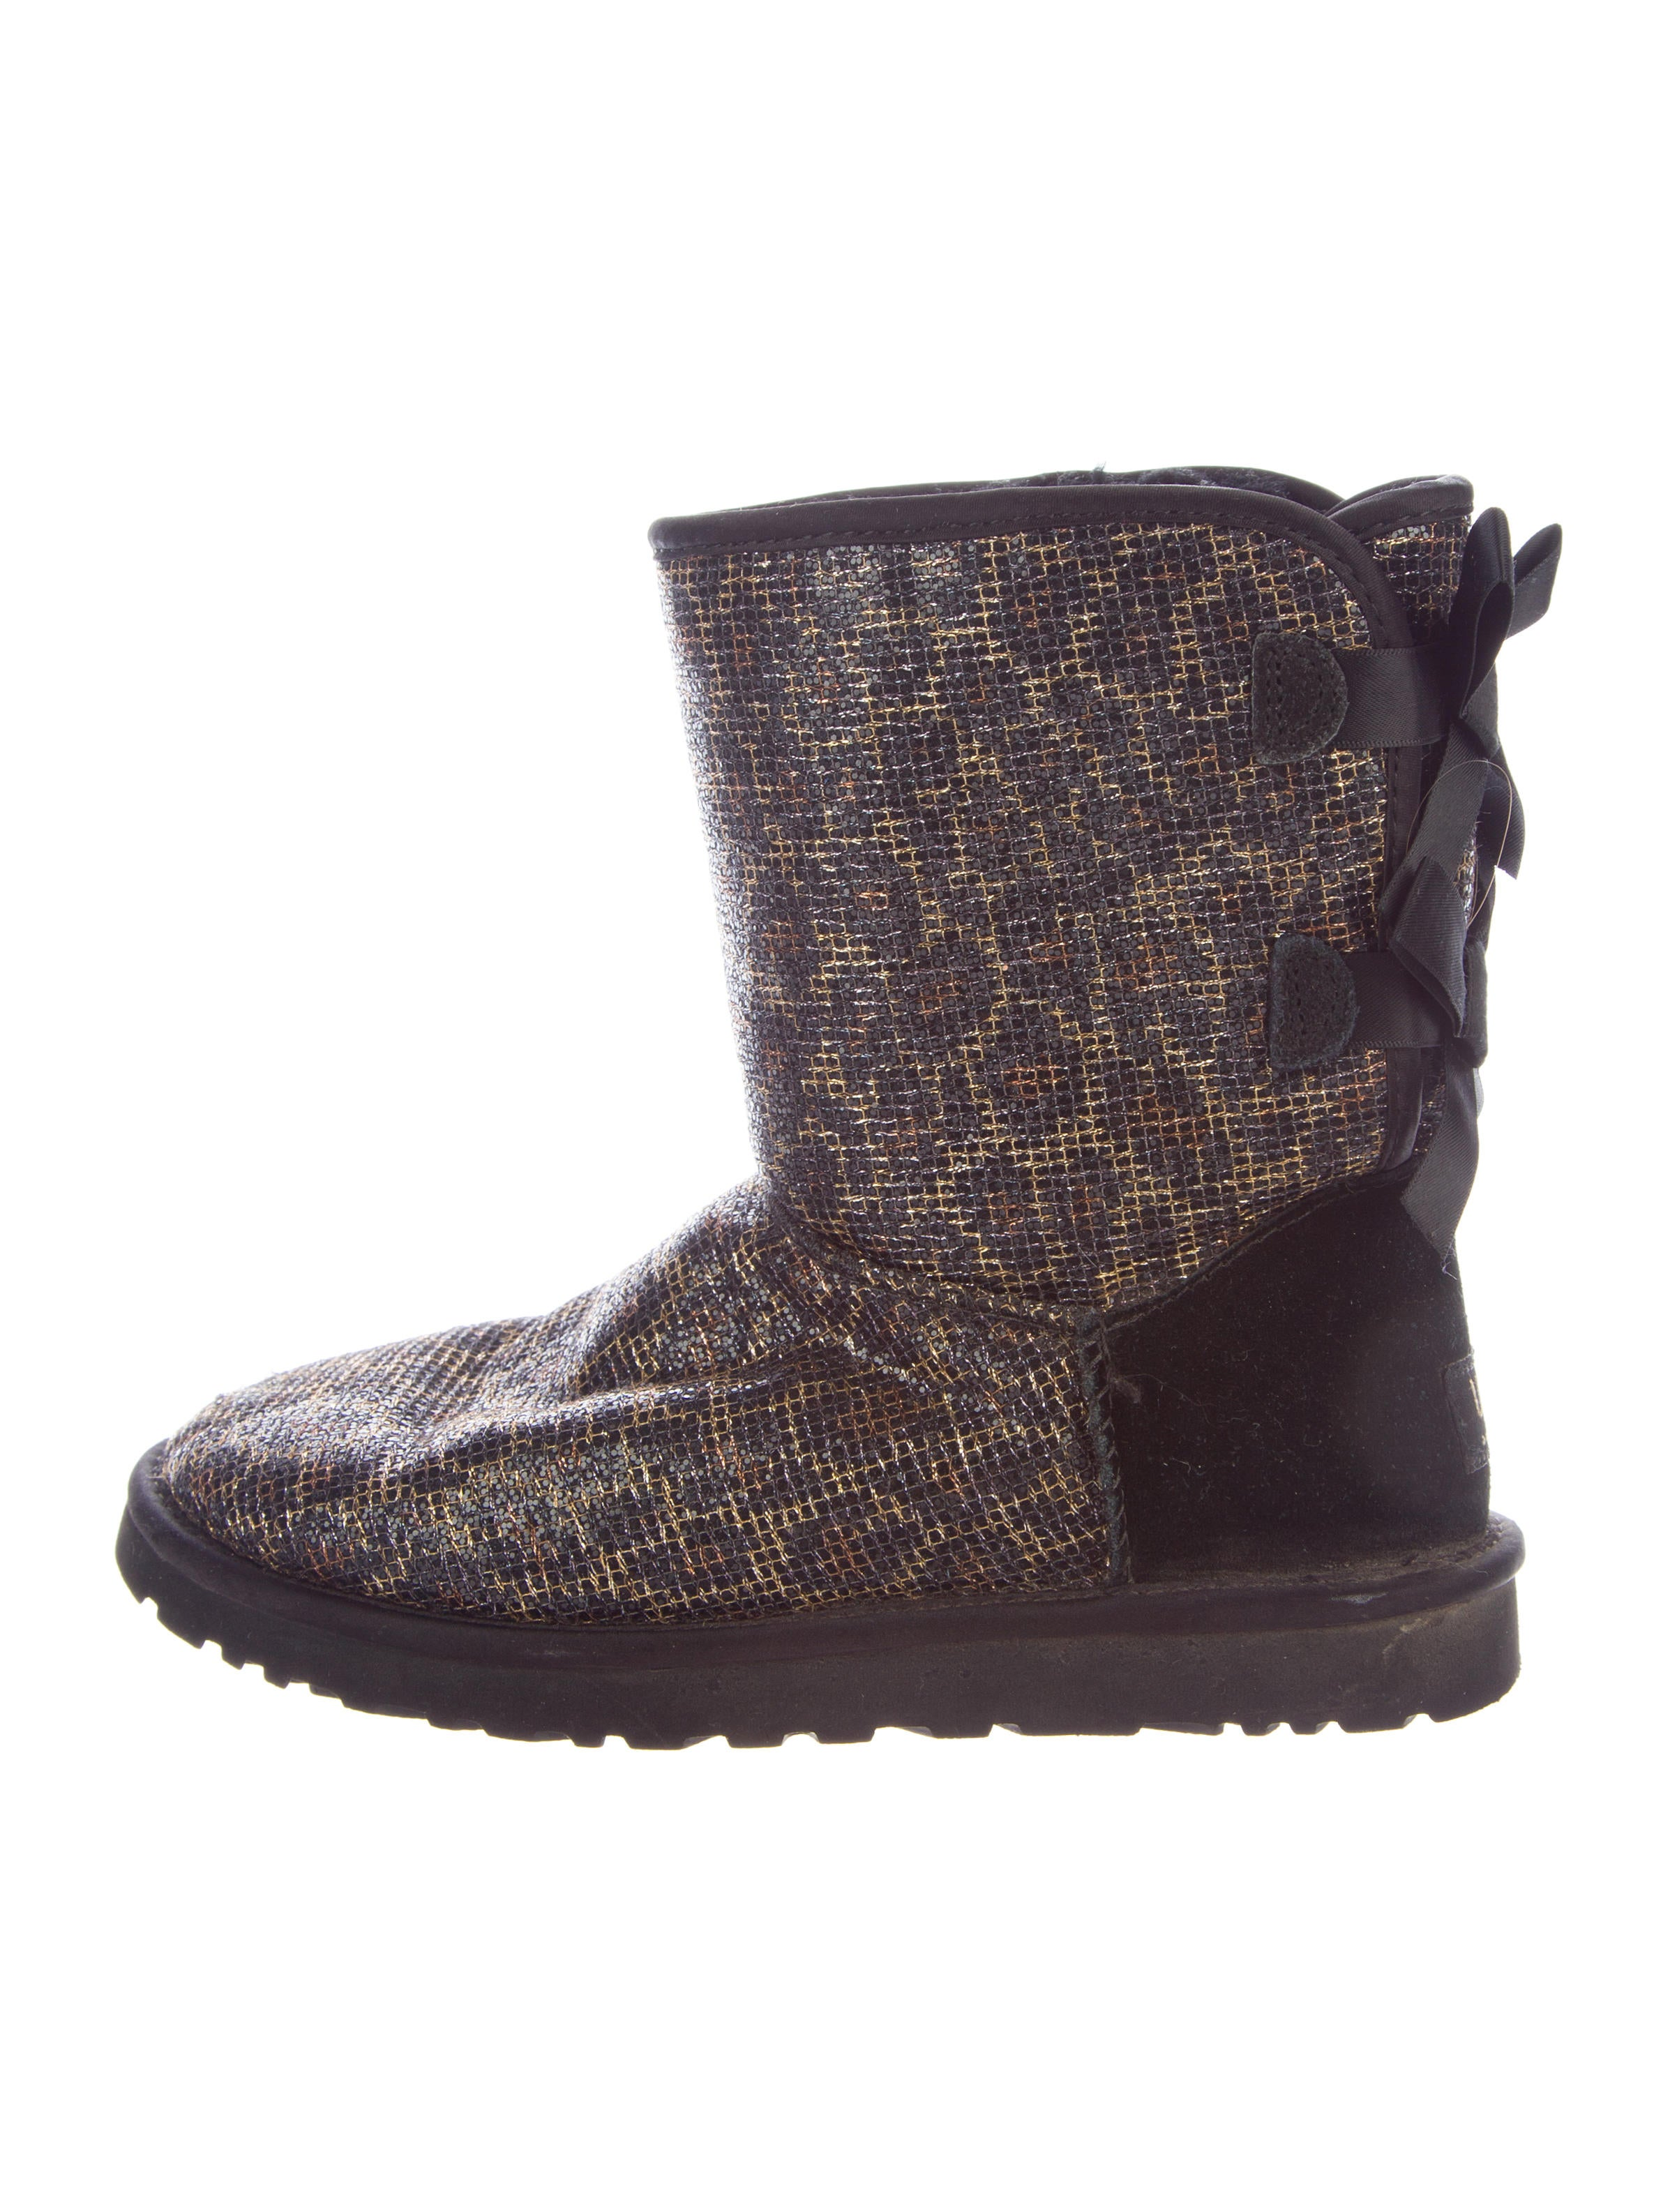 ugg australia bailey bow ankle boots shoes wuugg23039